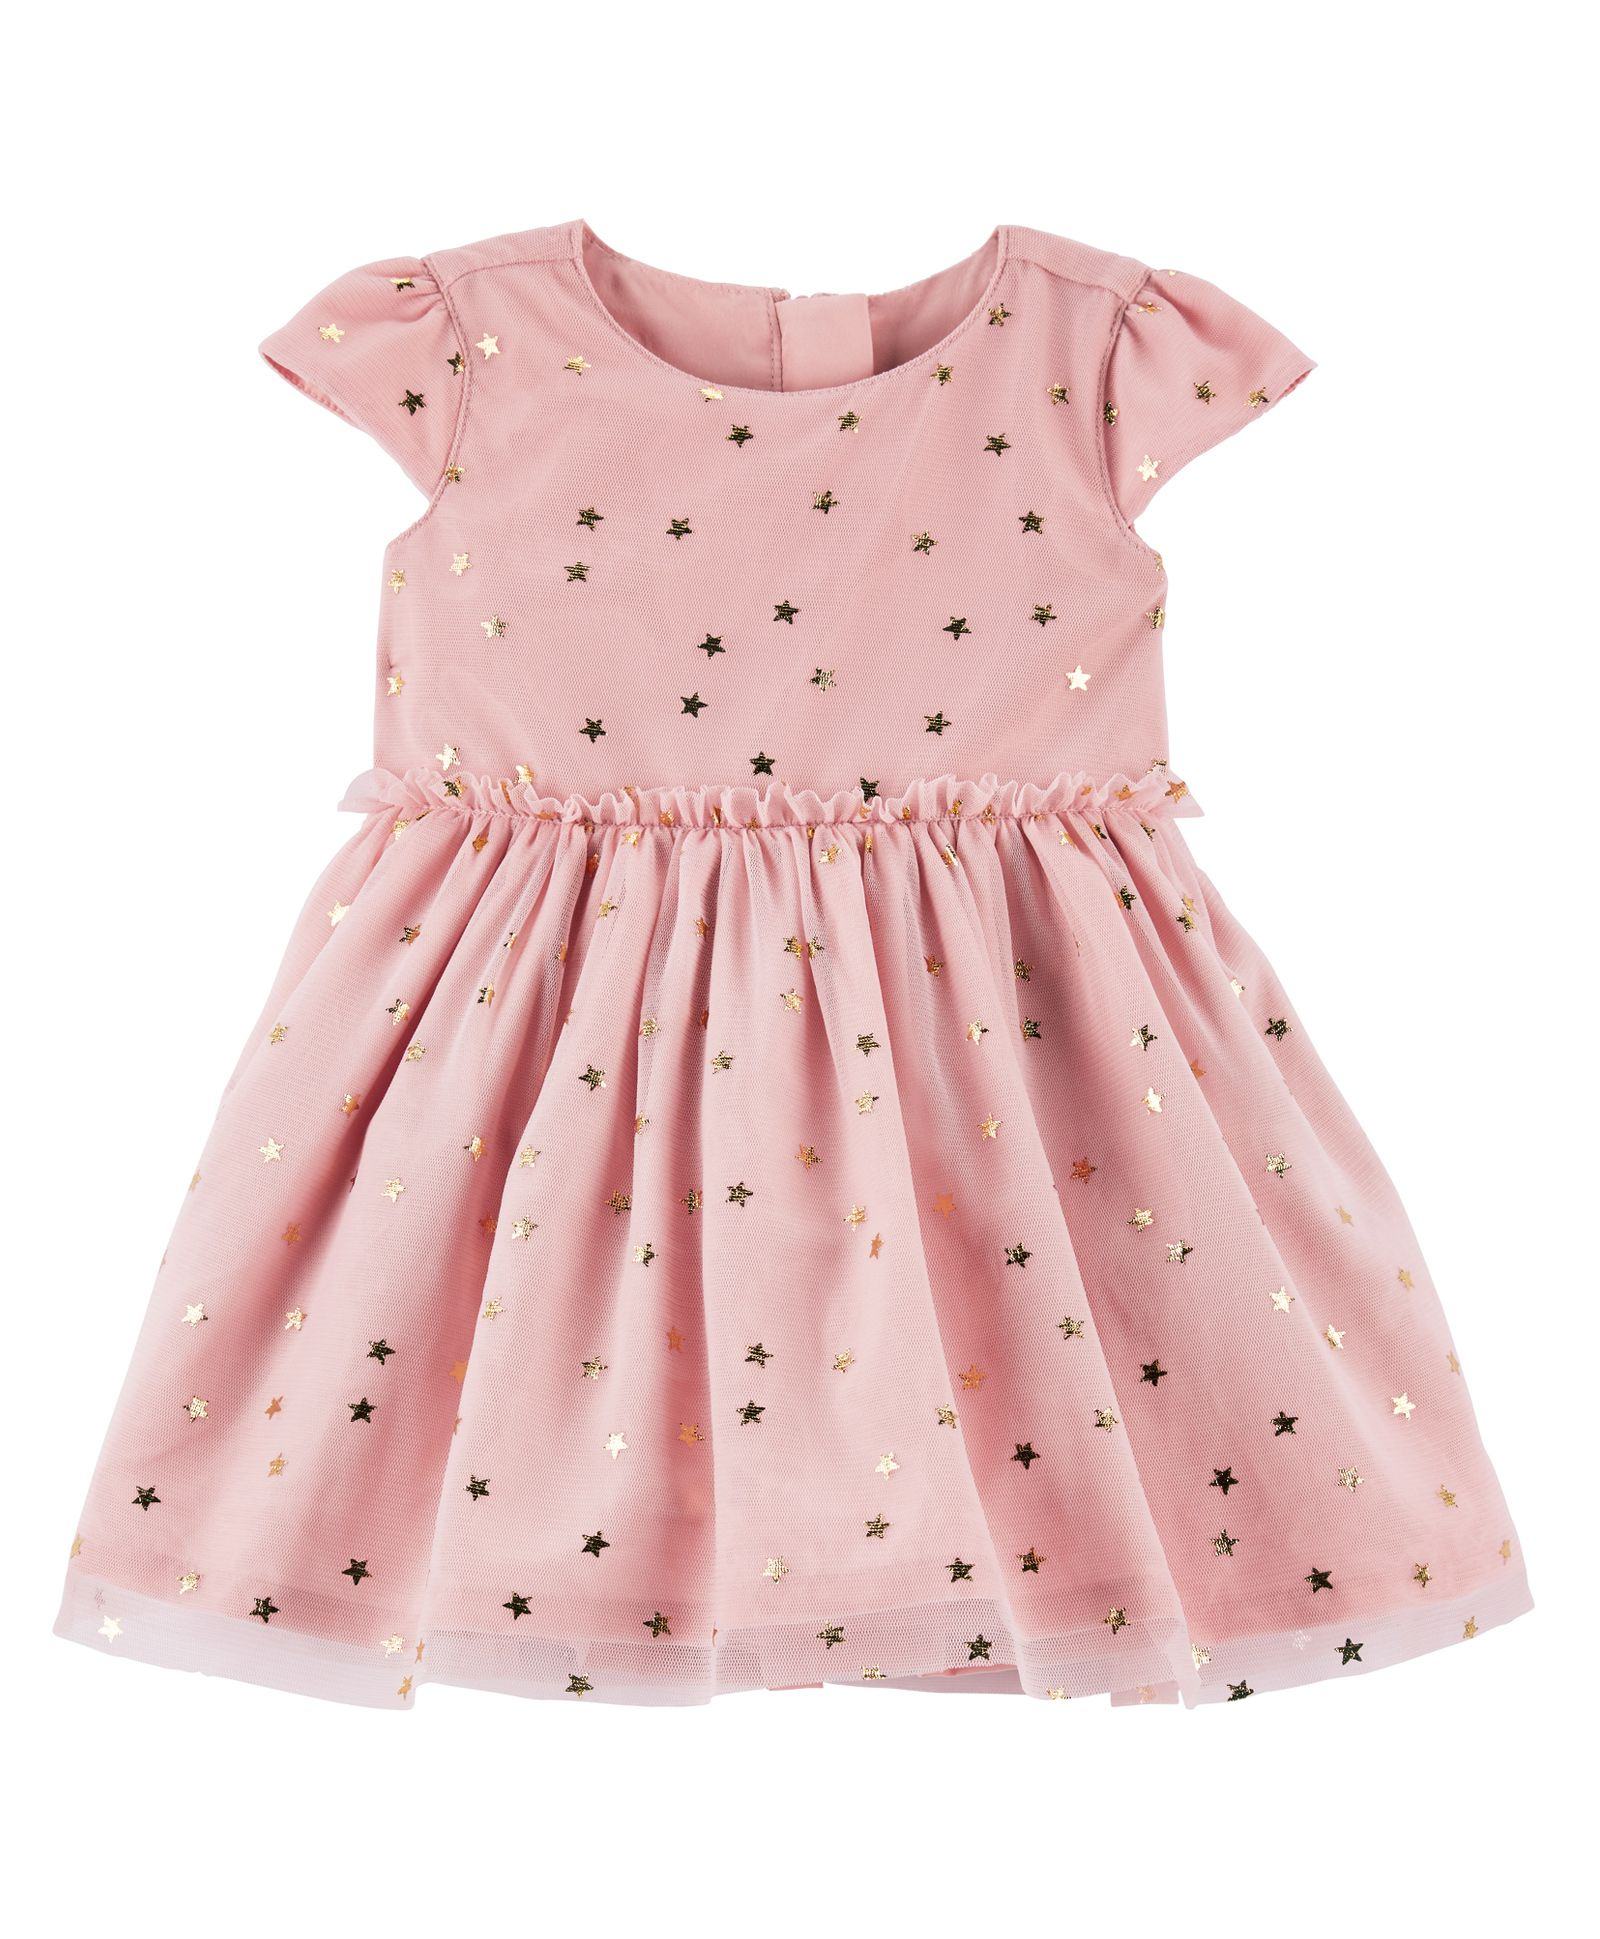 9288965dd Buy Carters Star Tulle Holiday Dress Pink for Girls (0-3 Months) Online ...